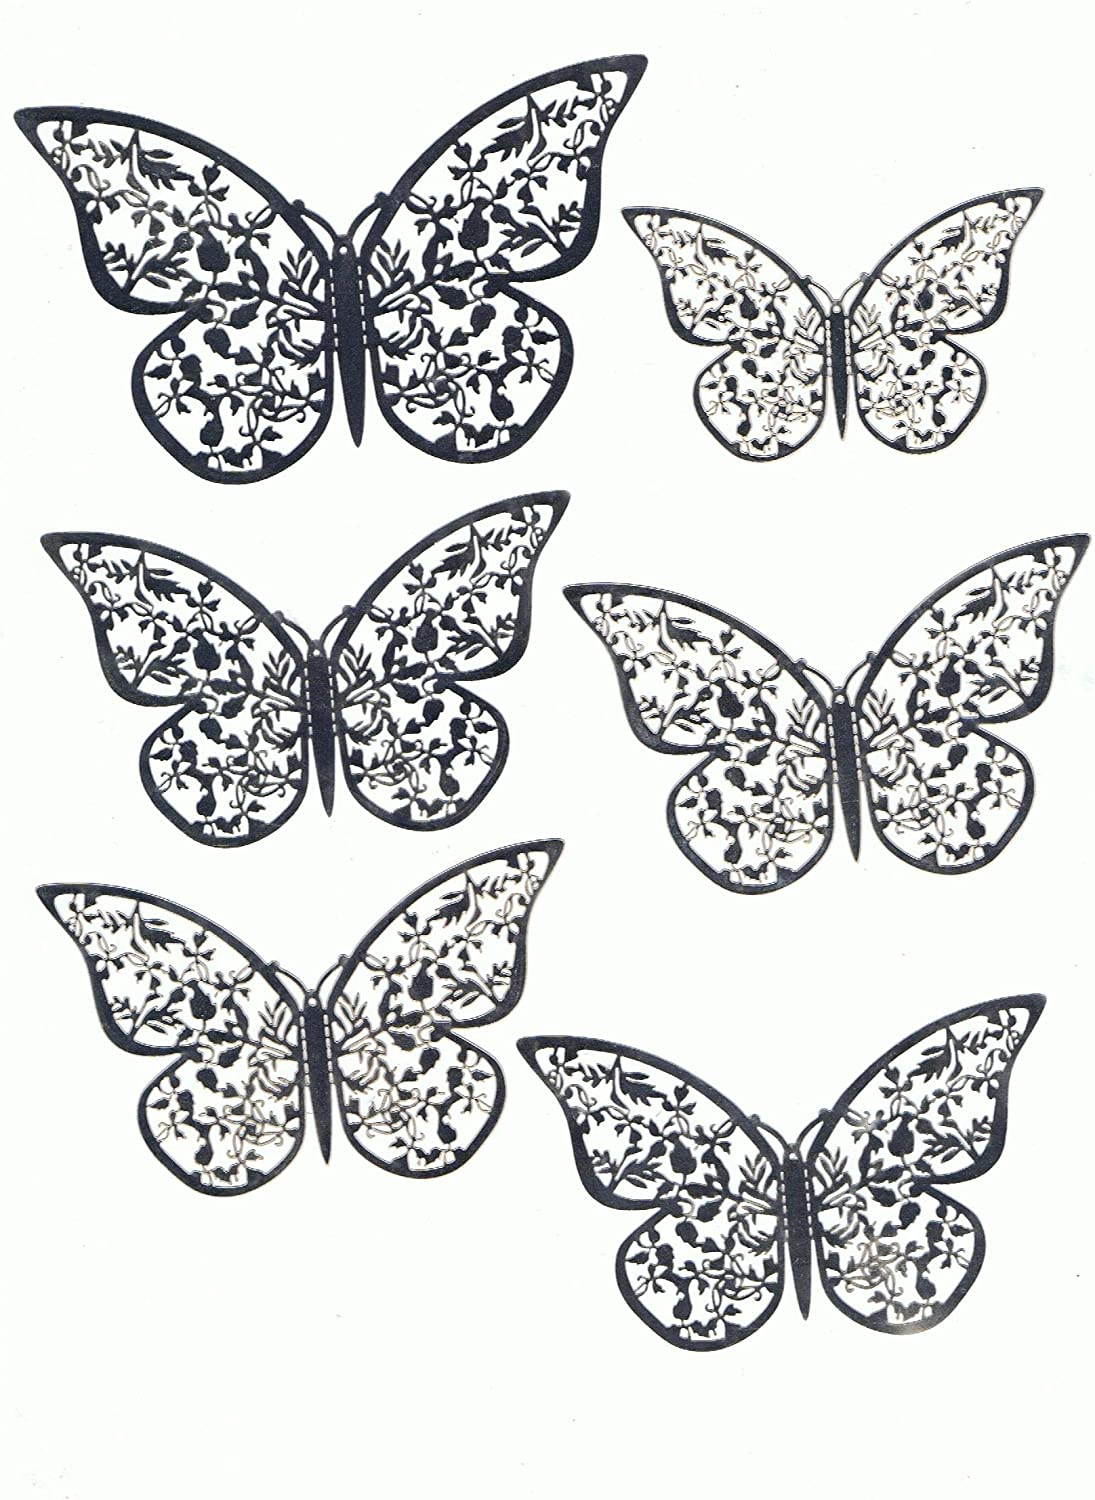 Sliver, 12 Pcs Jubilant Enterprise JE 3D Butterfly Wall Stickers Butterfly Wall Decals for Home D/écor DIY Butterflies Fridge Sticker Room Decoration Party Weddings D/écor and Children Playrooms